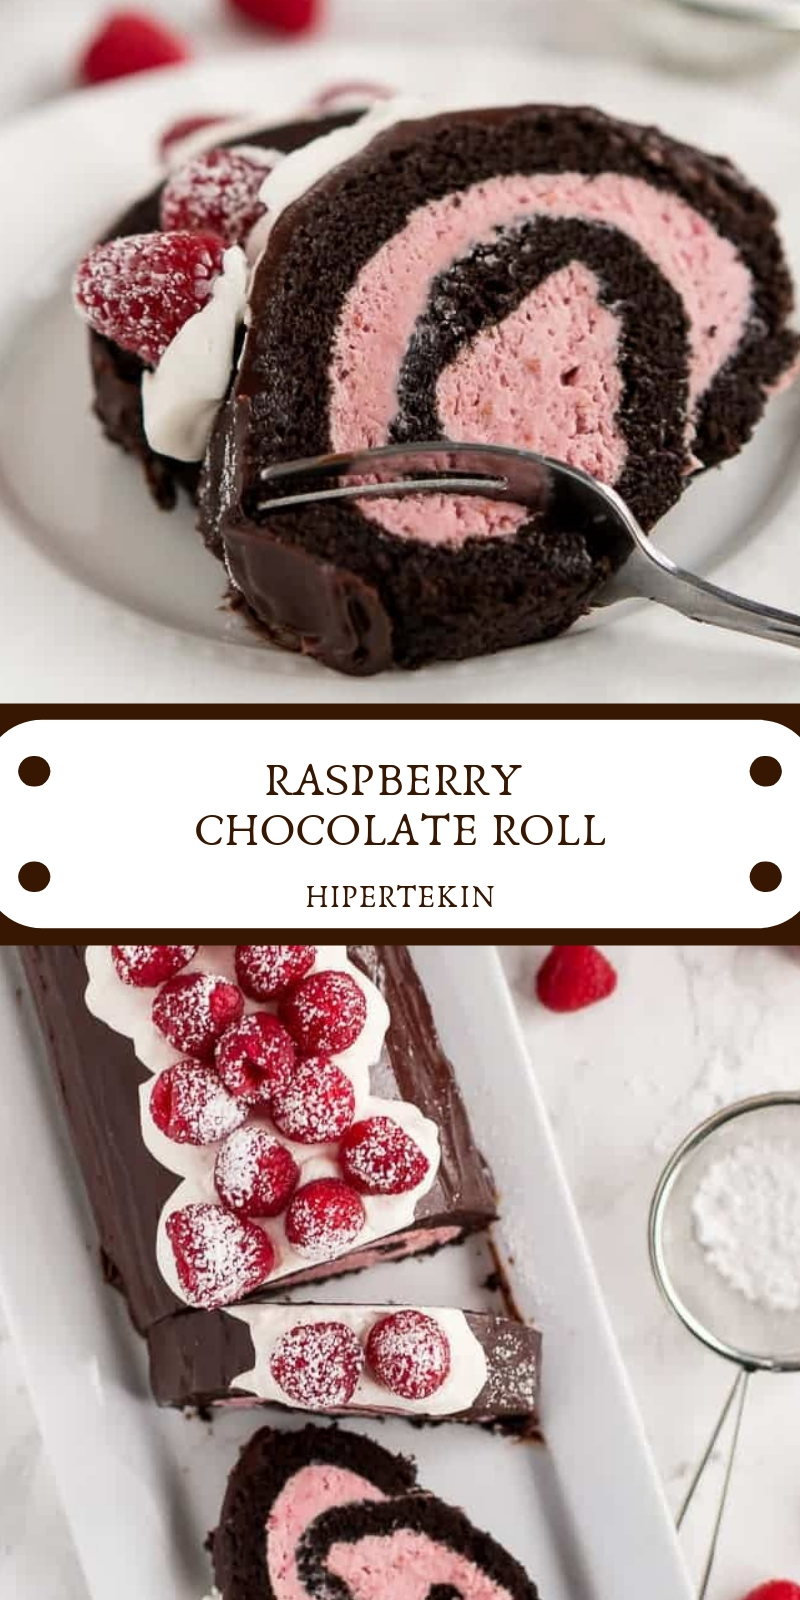 RASPBERRY CHOCOLATE ROLL